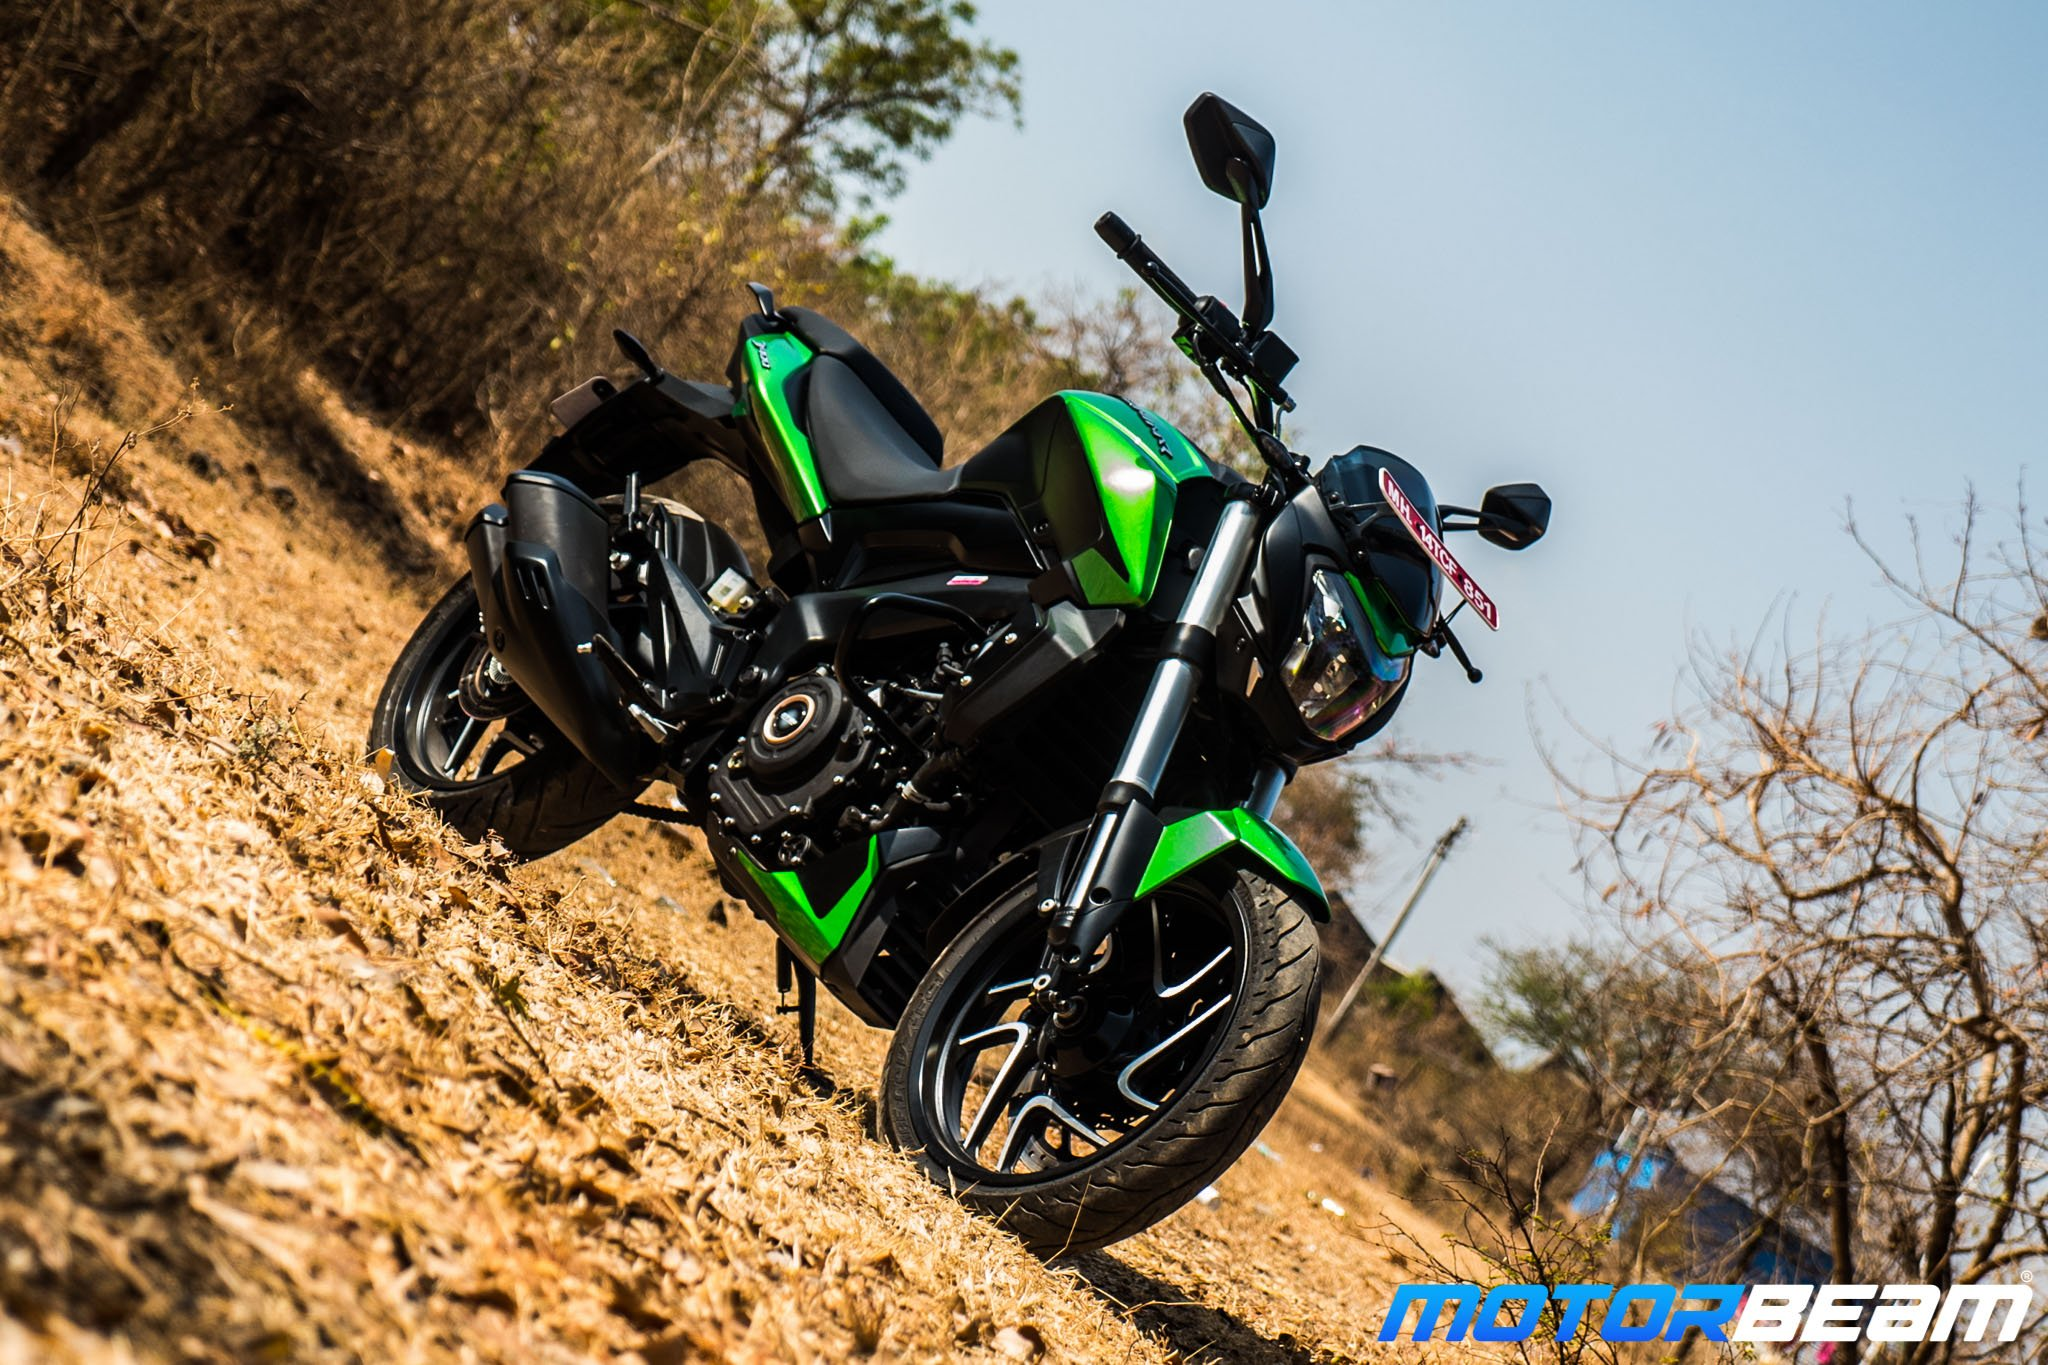 2019 Bajaj Dominar 400 UG Test Ride Review